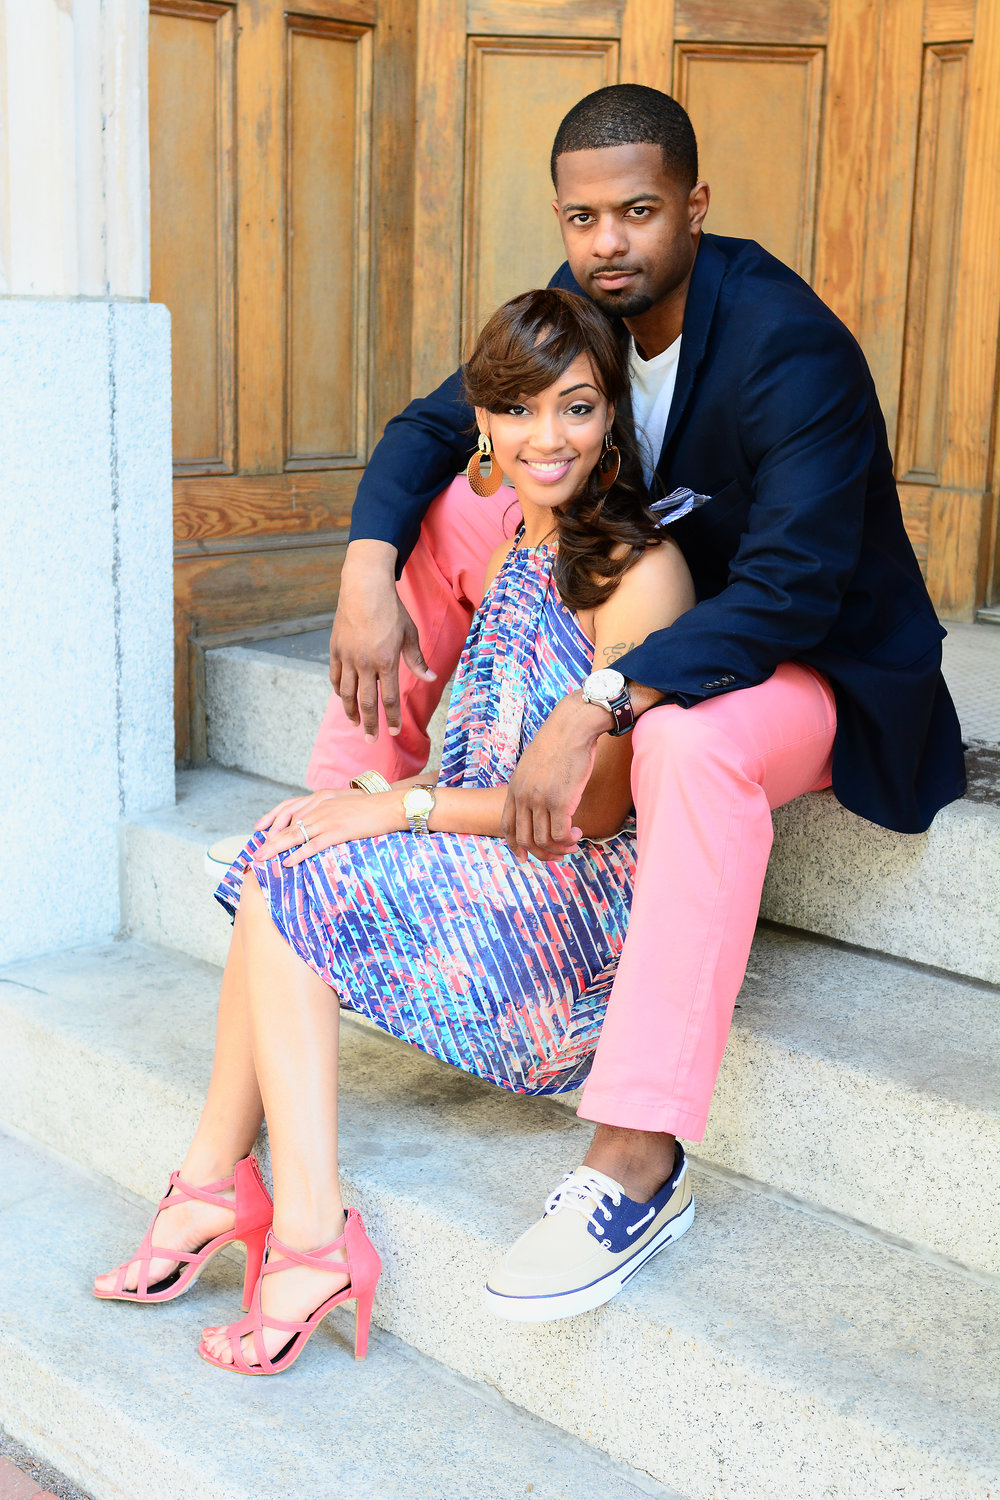 downtown Norfolk engagement portrait Jan Casper Photography Virginia